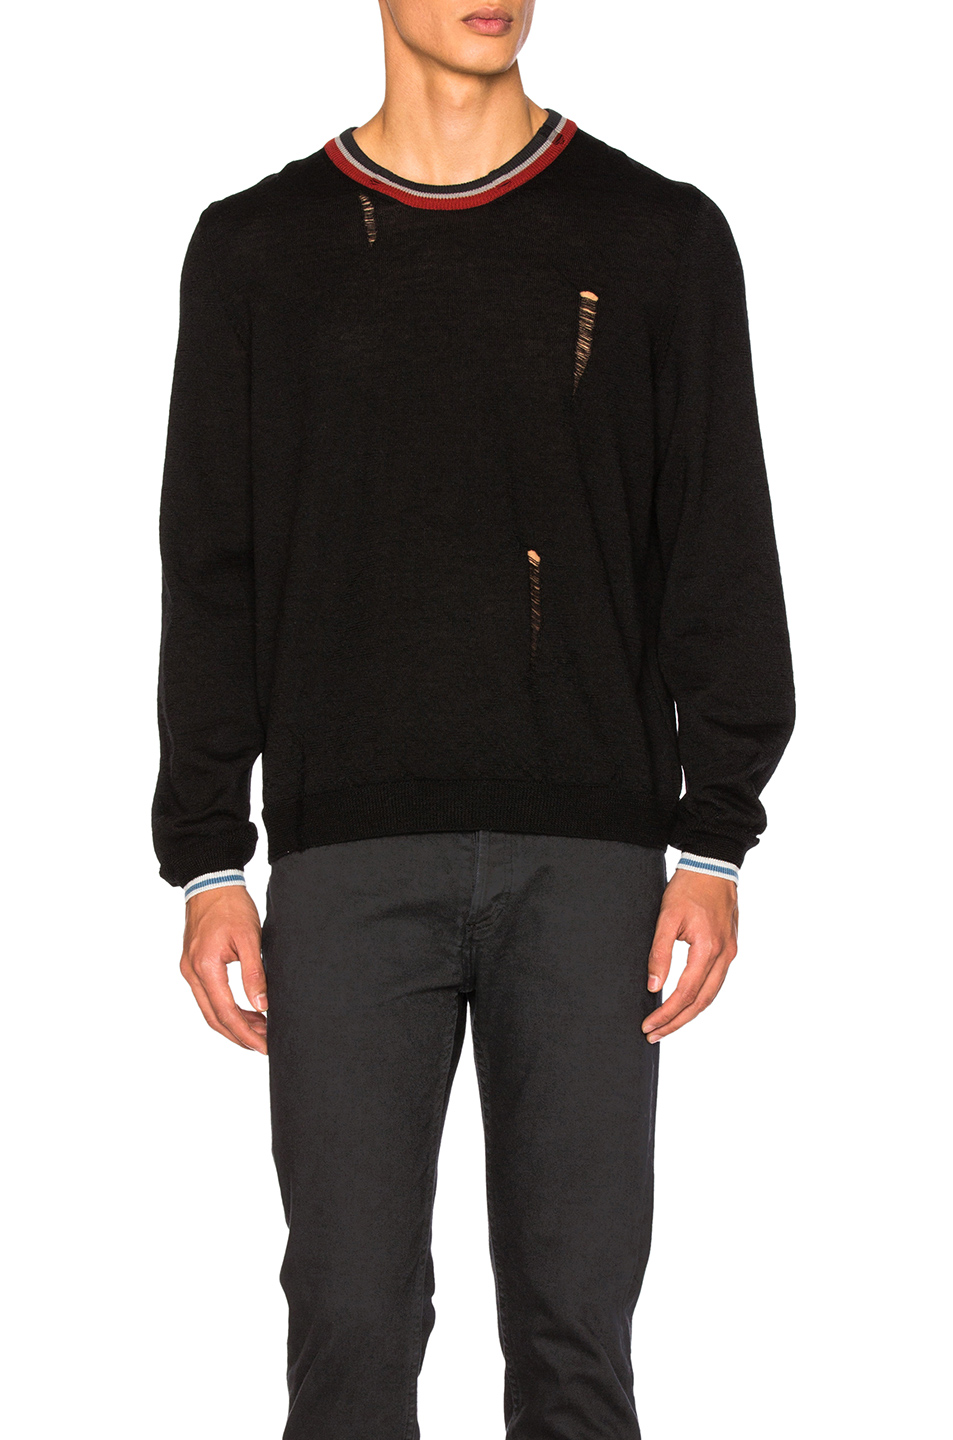 Lanvin Open Stitch & Stripe Detail Sweater in Black